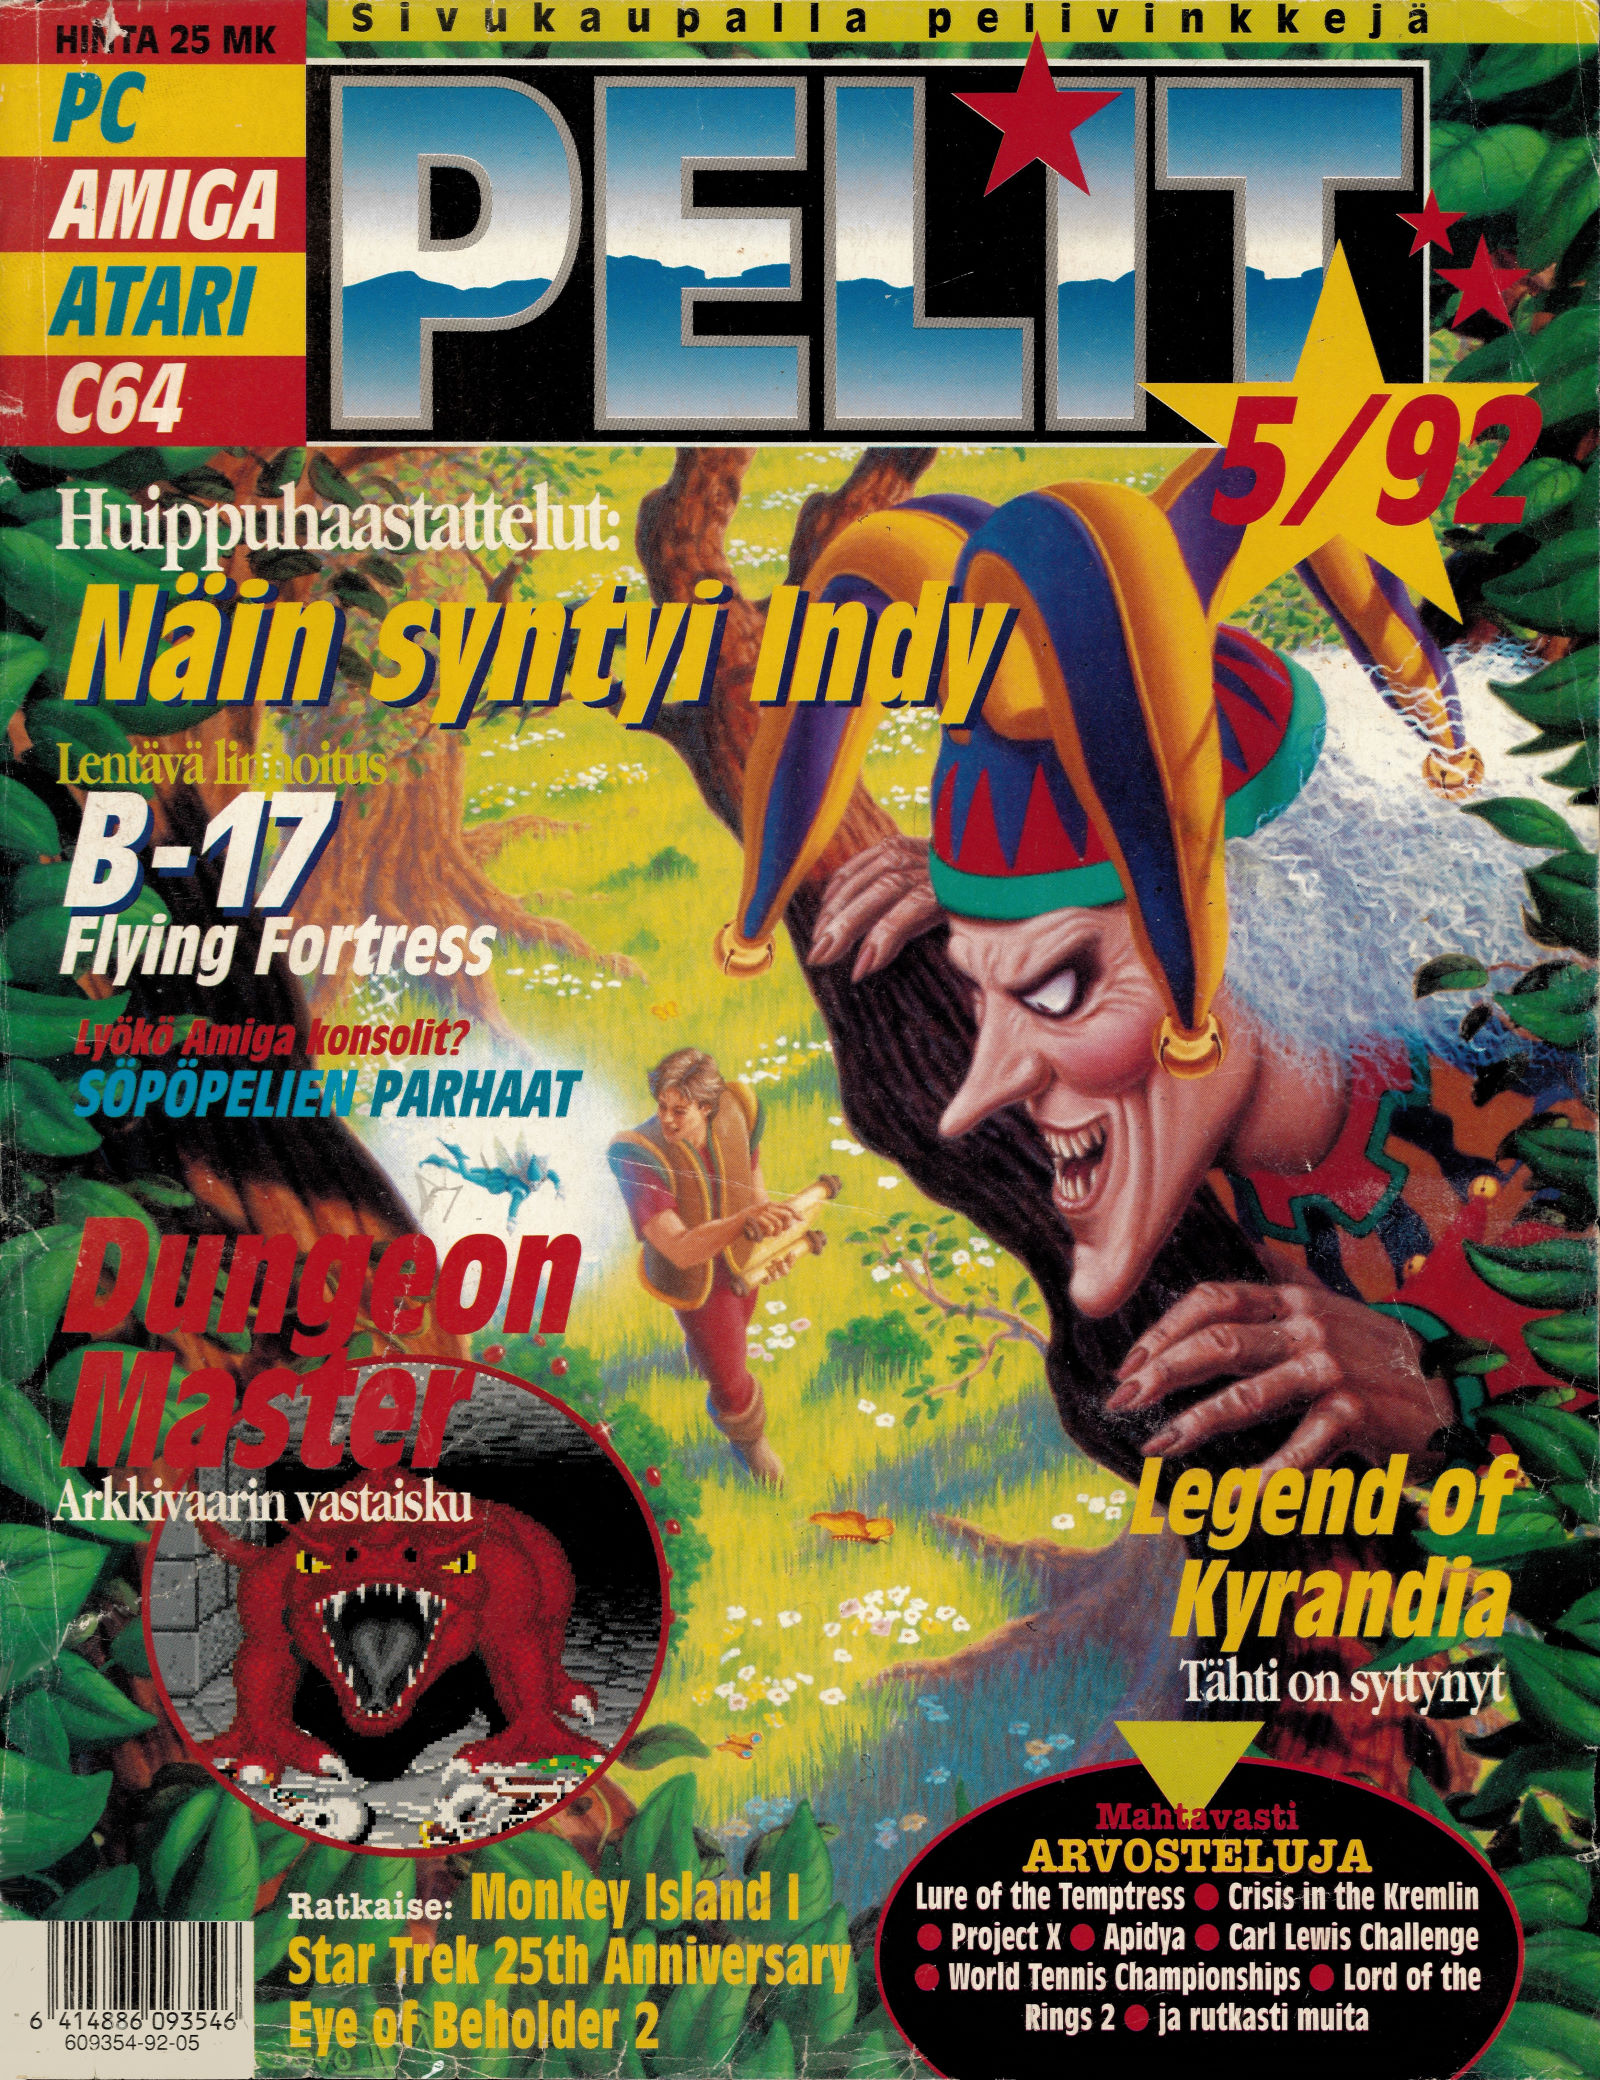 Dungeon Master Cover published in Finnish magazine 'Pelit', May 1992, Page -